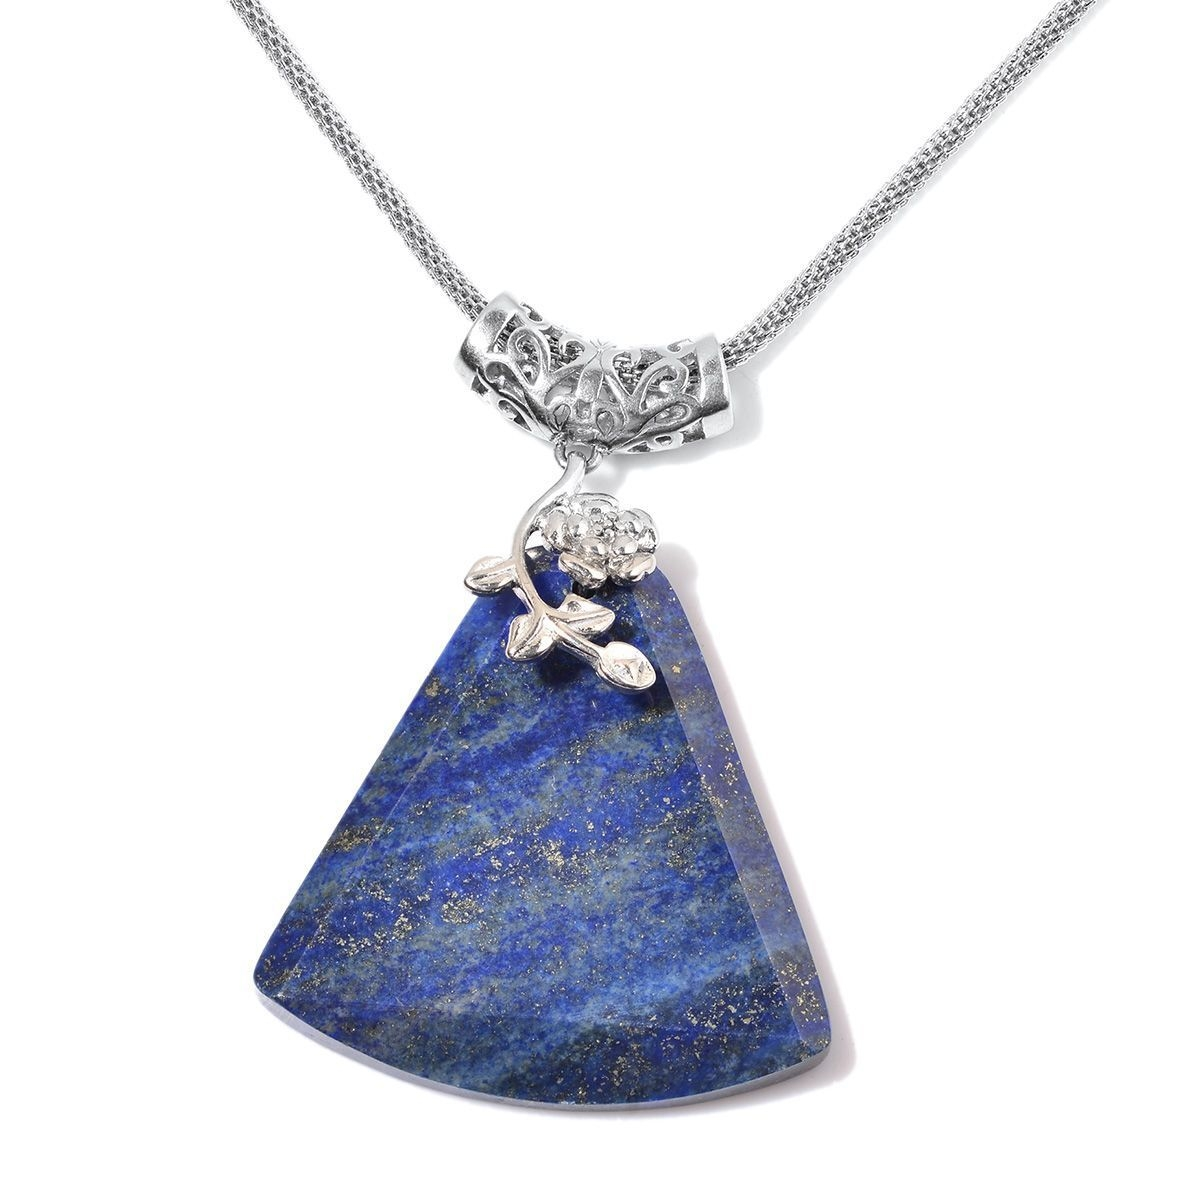 Shop for Lapis Lazuli Necklace & Pendant.